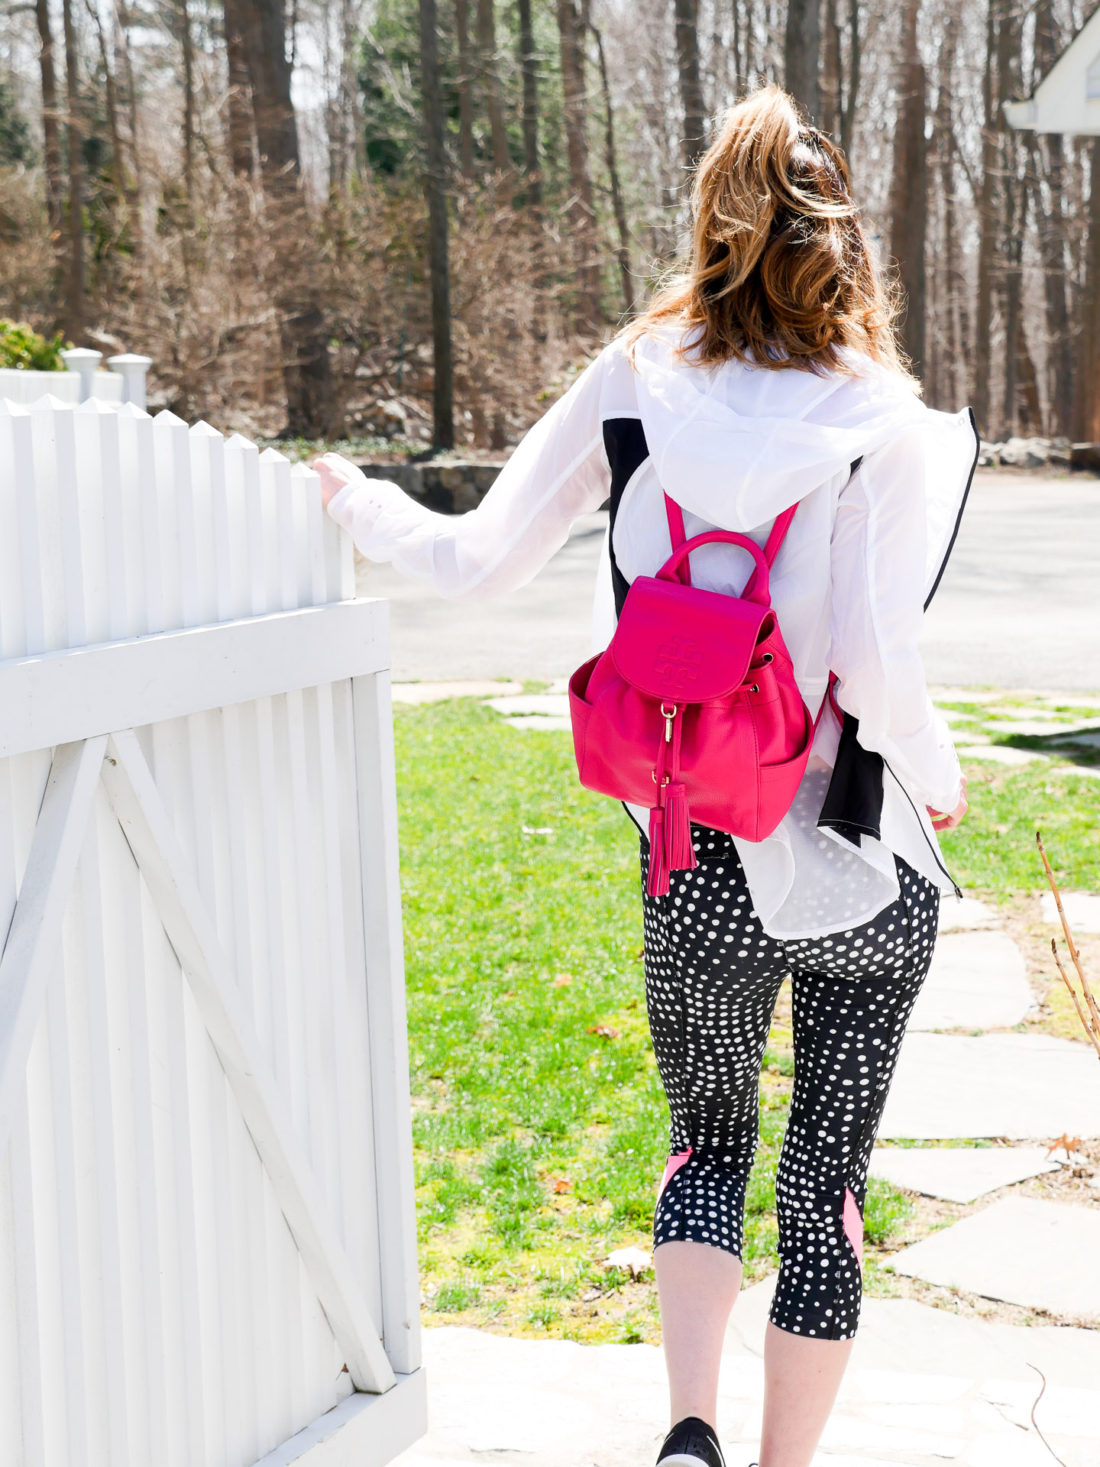 Eva Amurri Martino wears workout gear and a pink Tory Burch backpack and heads off to exercise